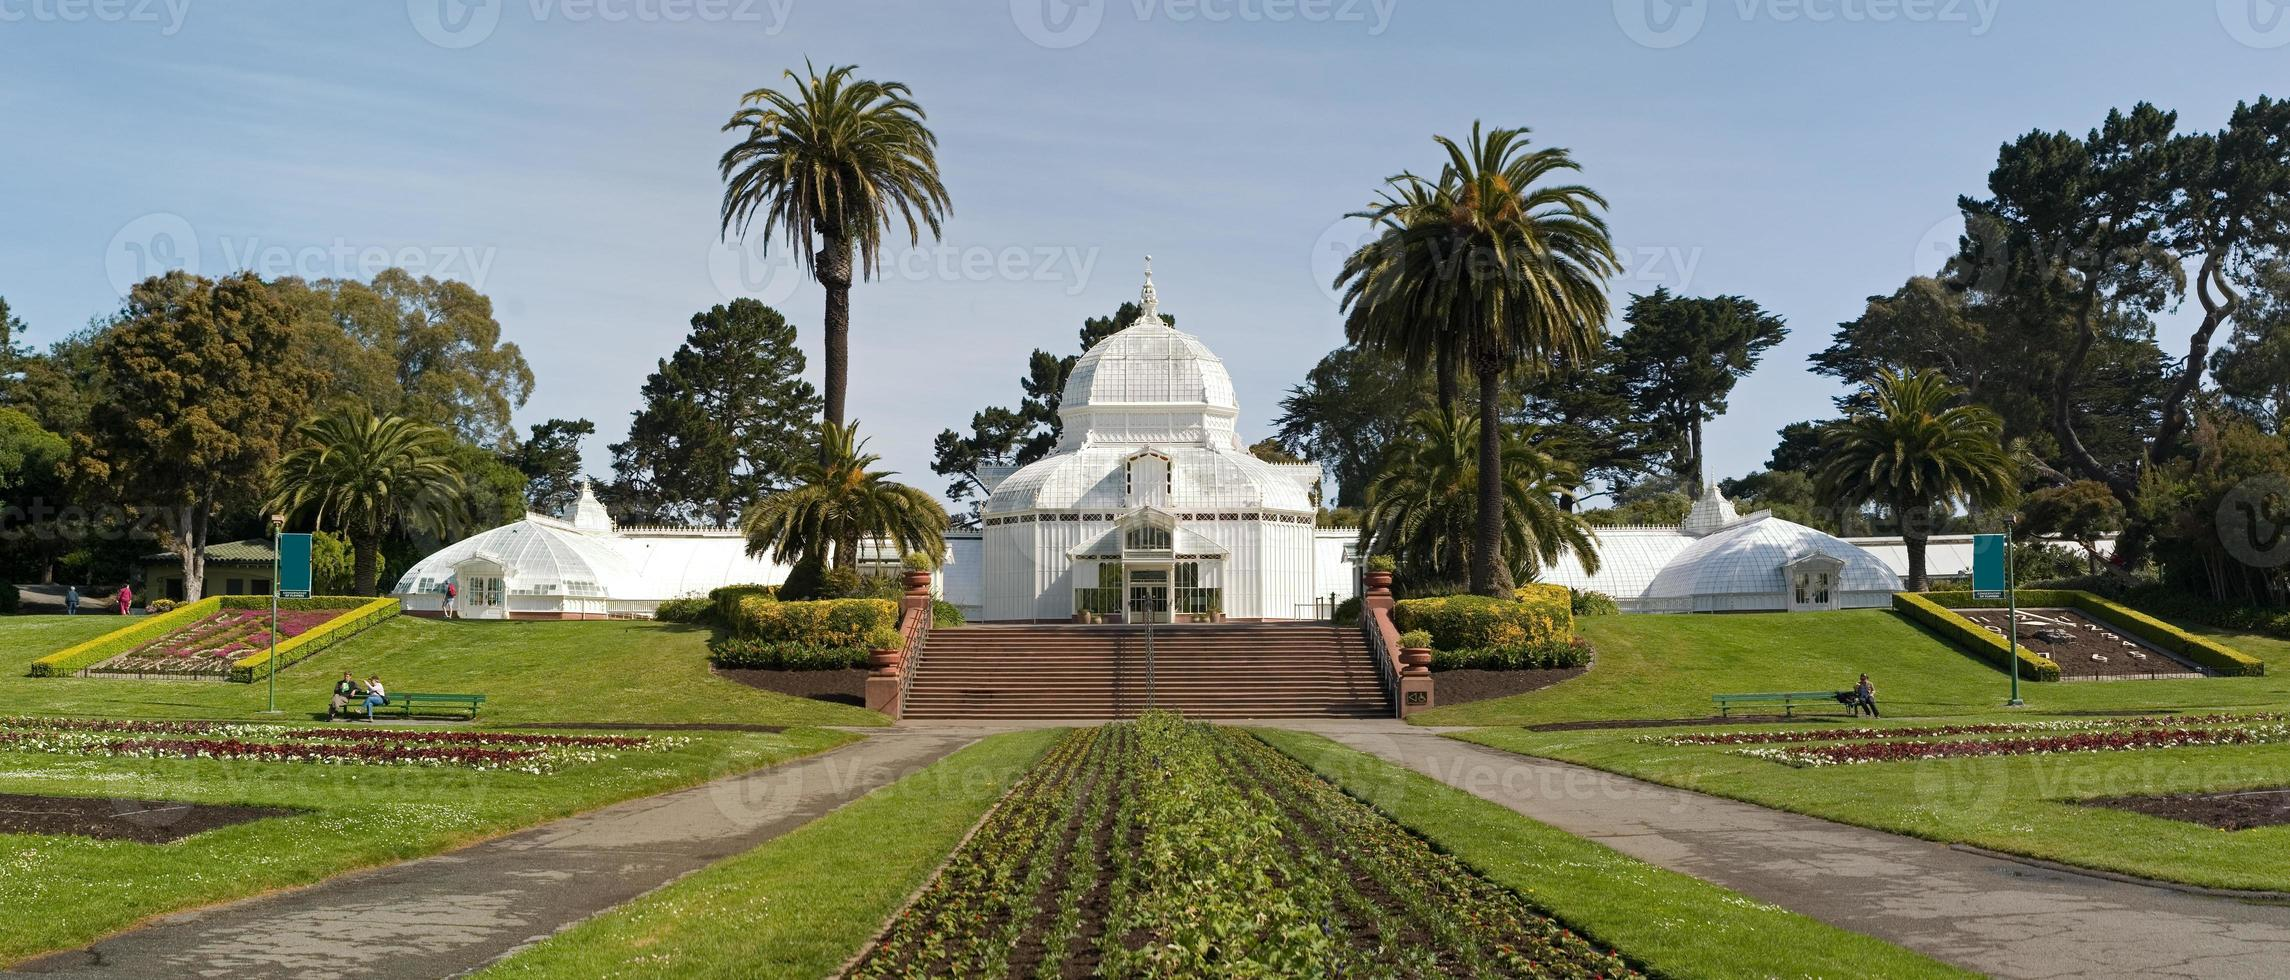 Full view Conservatory of flowers photo